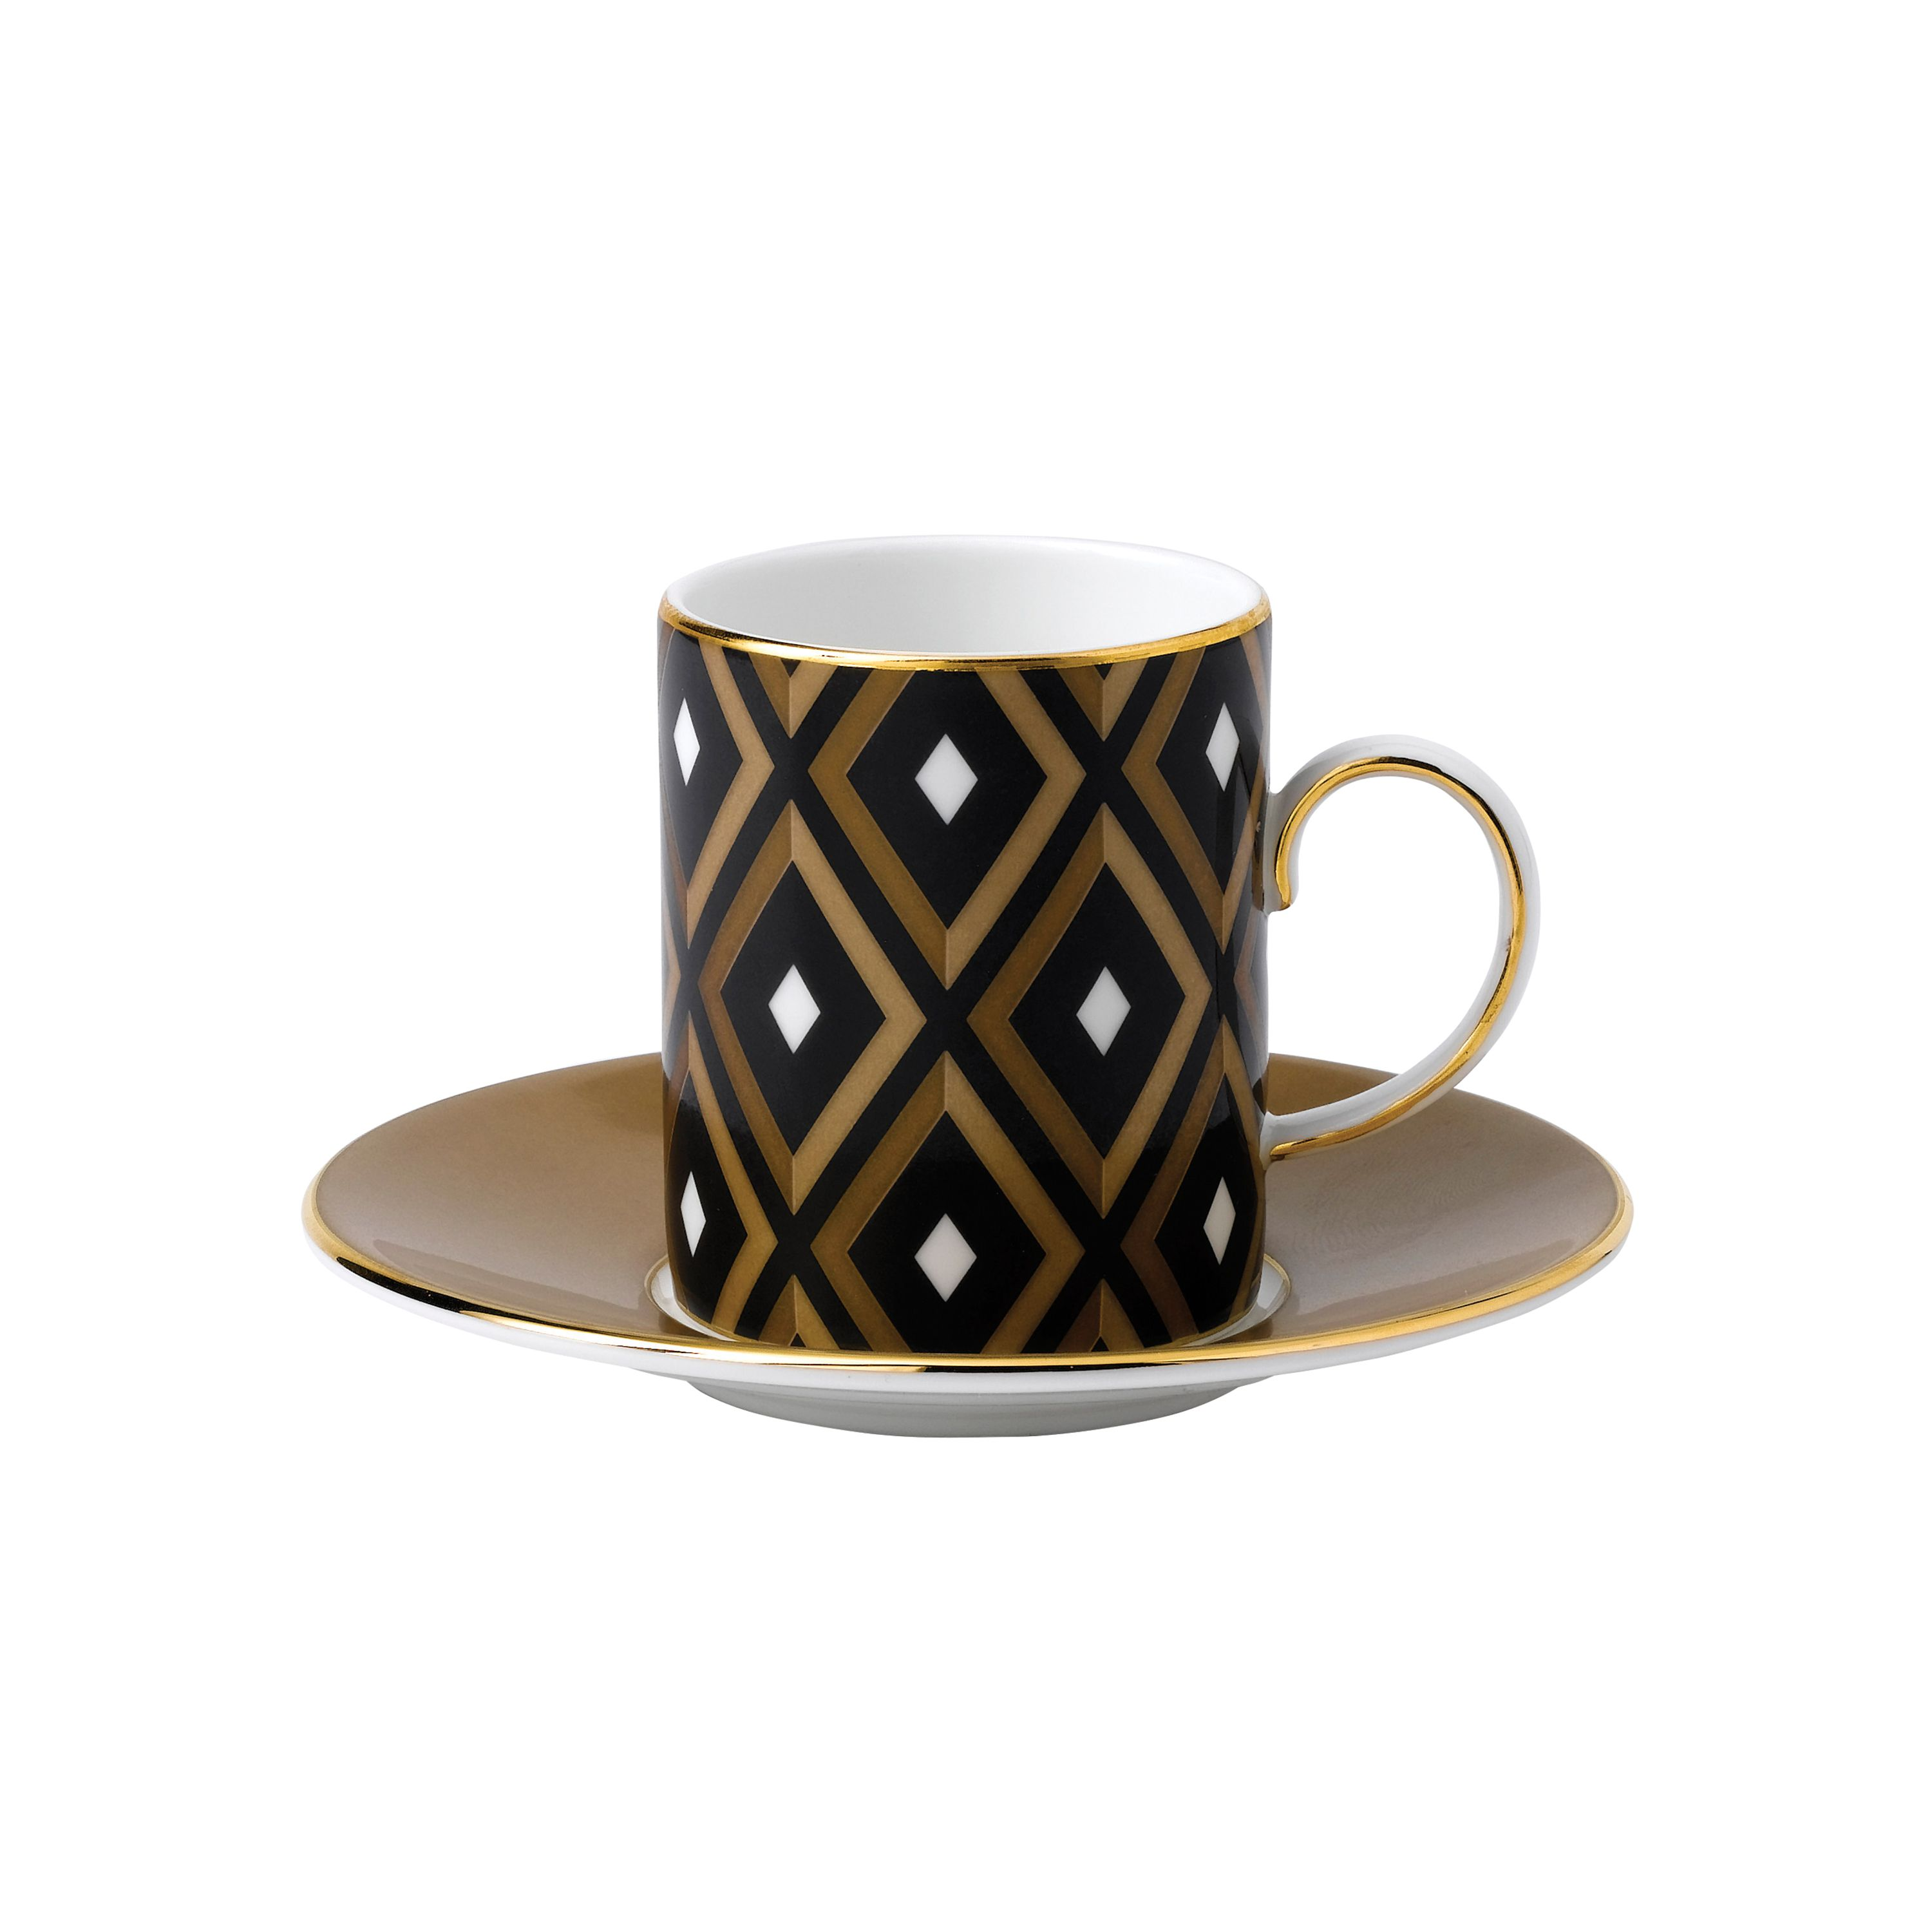 Image of Wedgwood Arris Espresso Cup & Saucer (Geo/Honey)